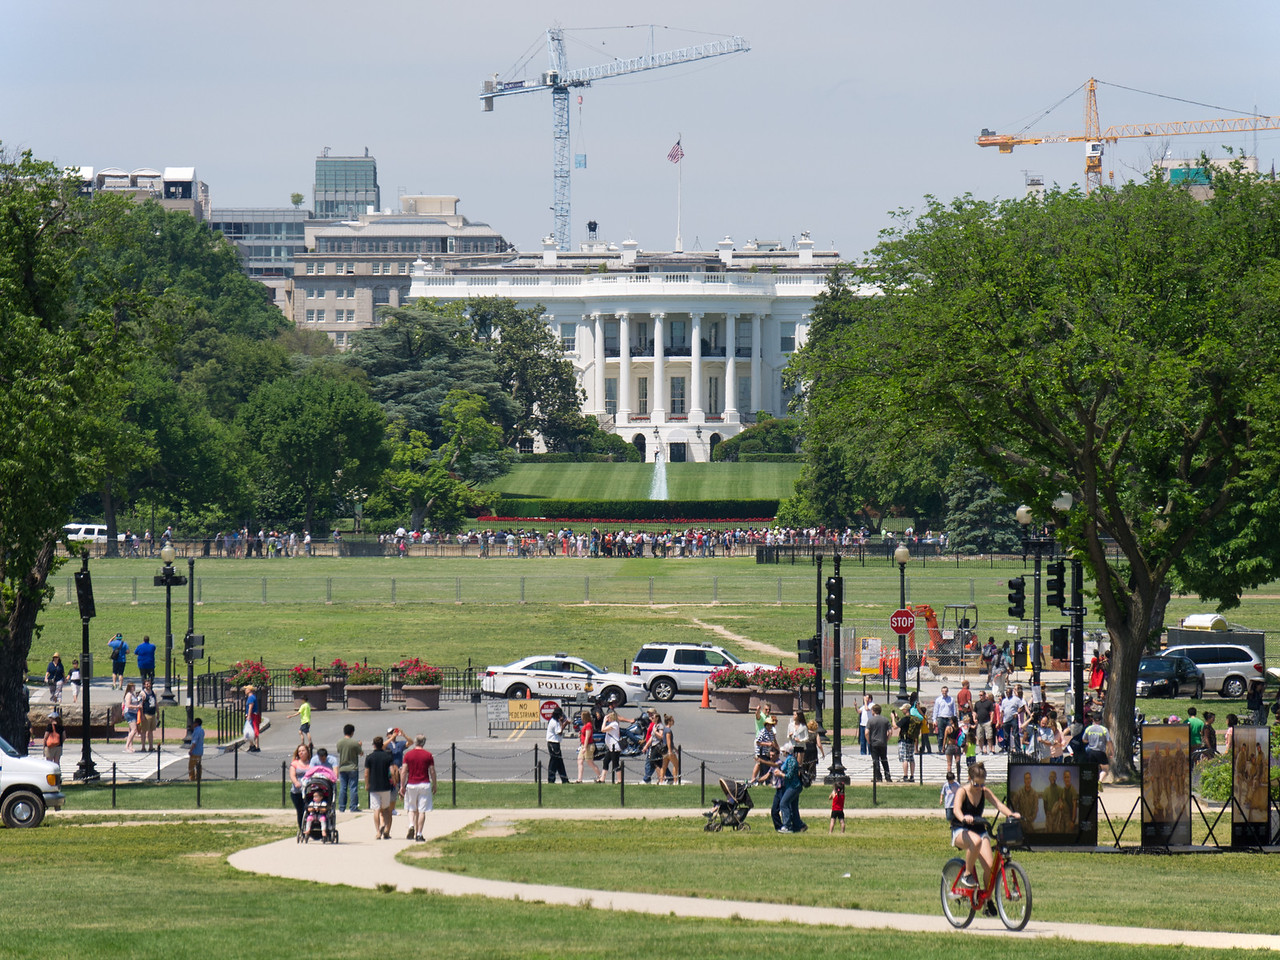 From near the Washington Monument you can see the White House